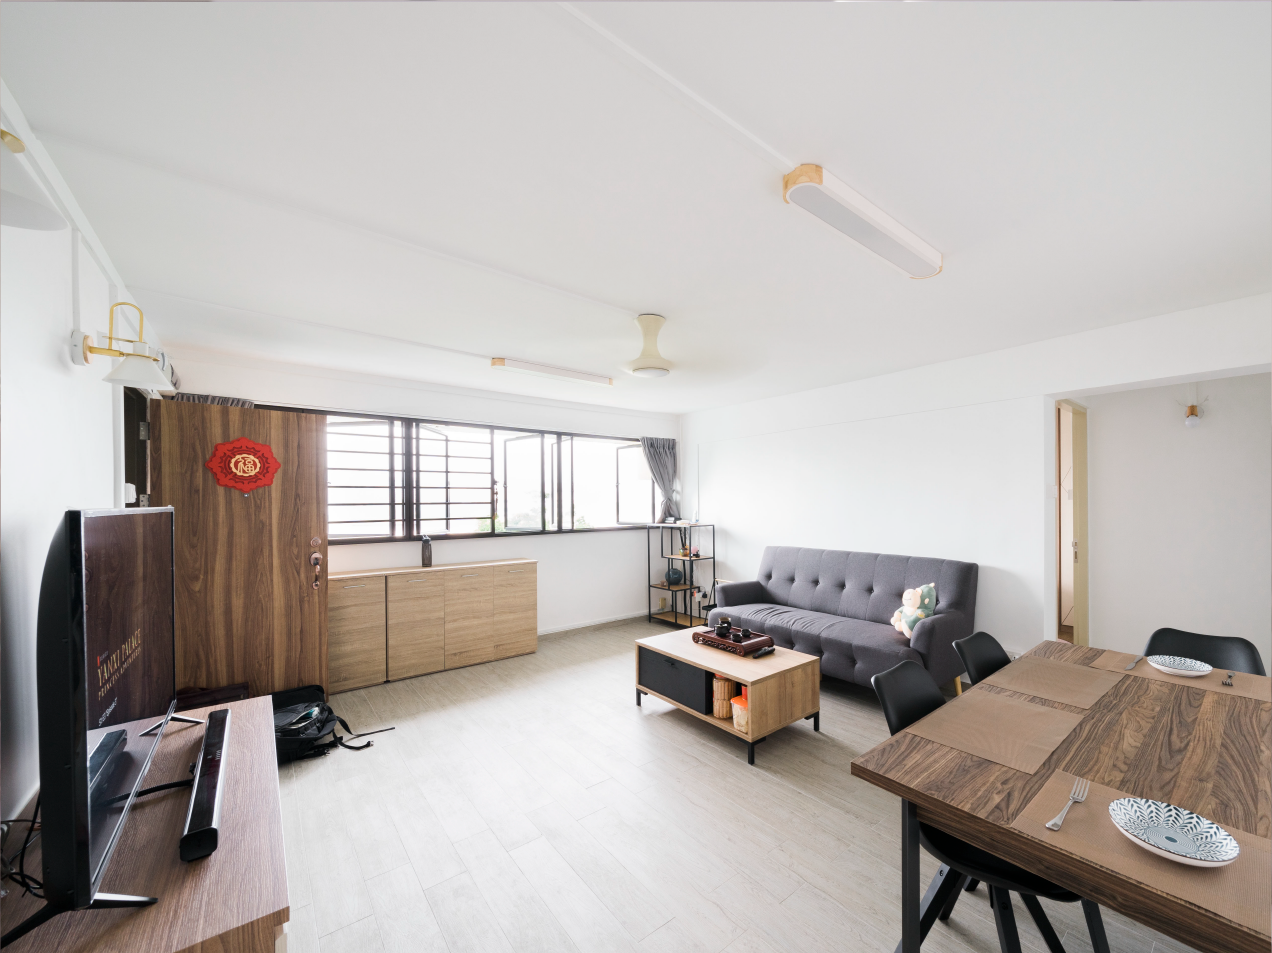 Living room of Randy's and Amy's four-room flat in Kallang